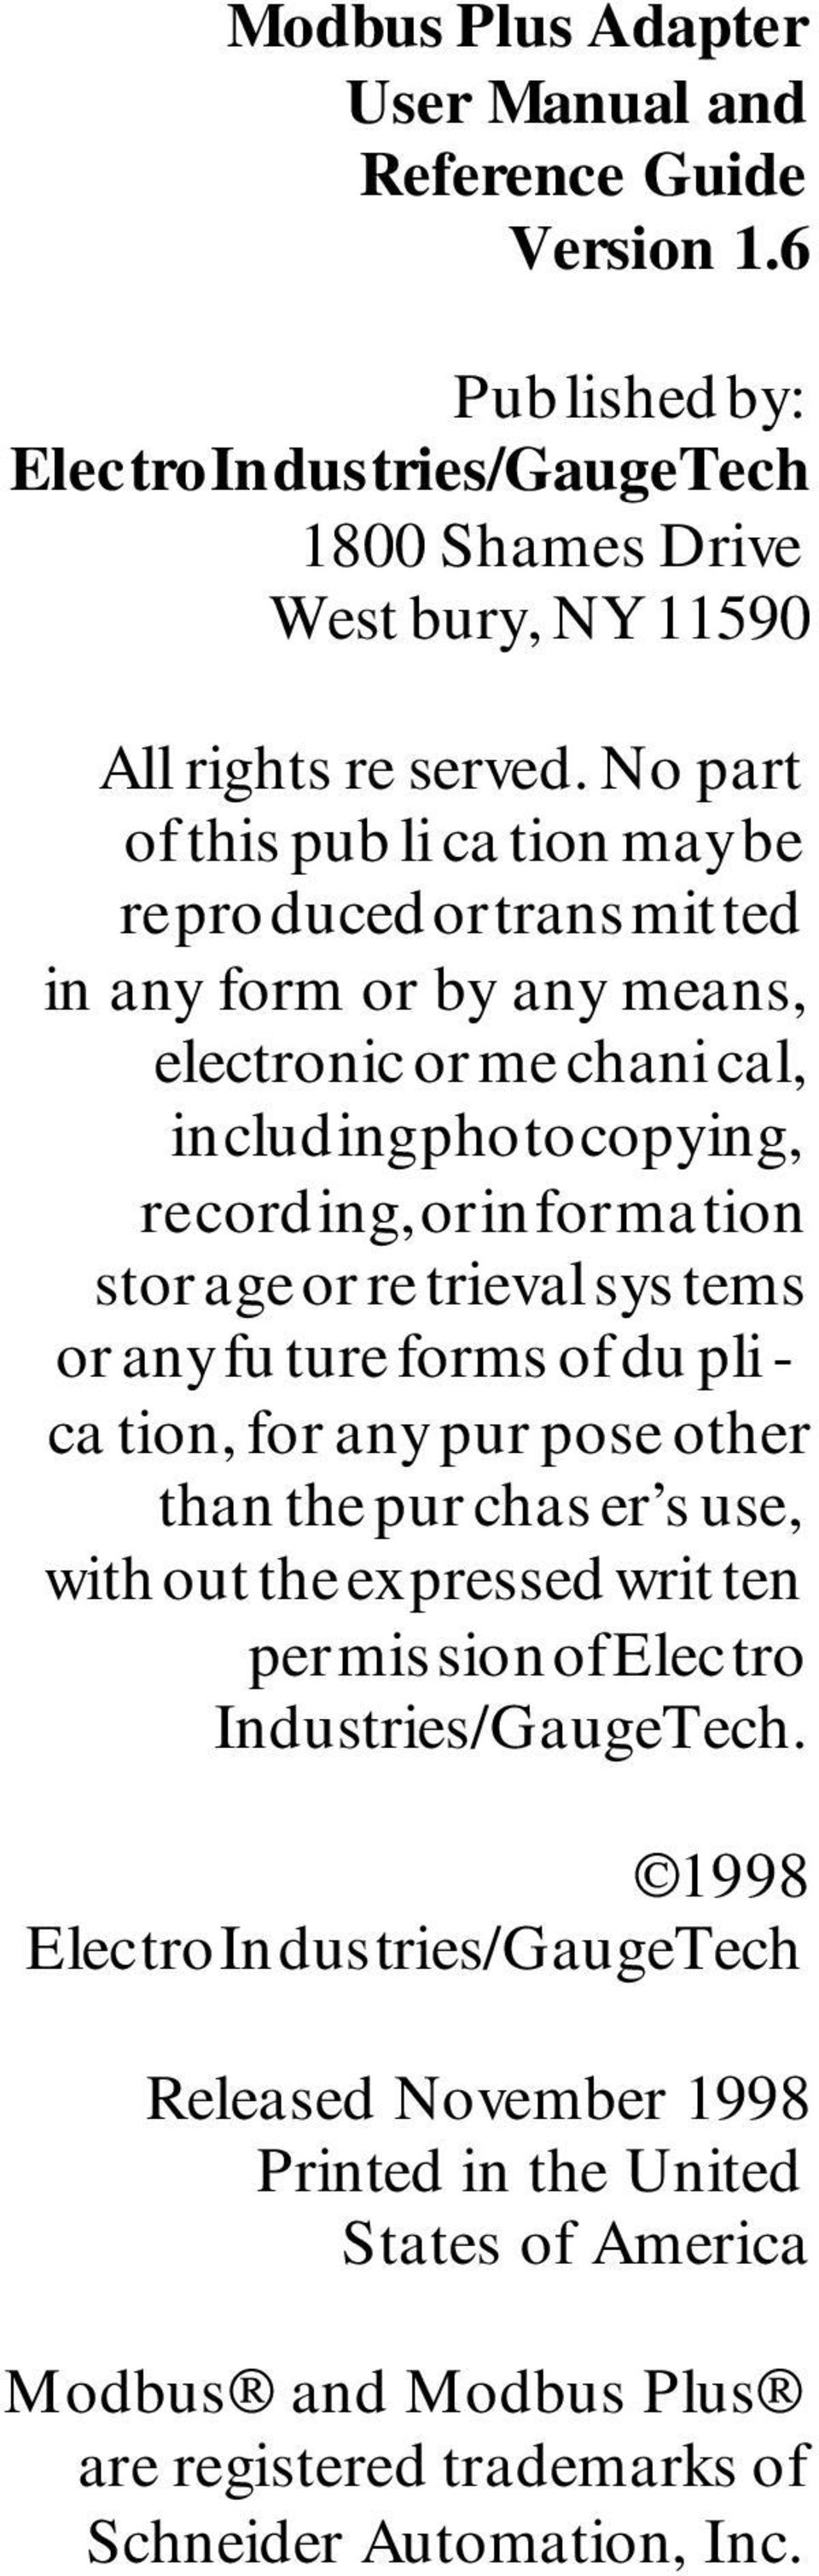 stor age or re trieval sys tems or any fu ture forms of du pli - ca tion, for any pur pose other than the pur chas er s use, with out the ex pressed writ ten per mis sion of Elec tro